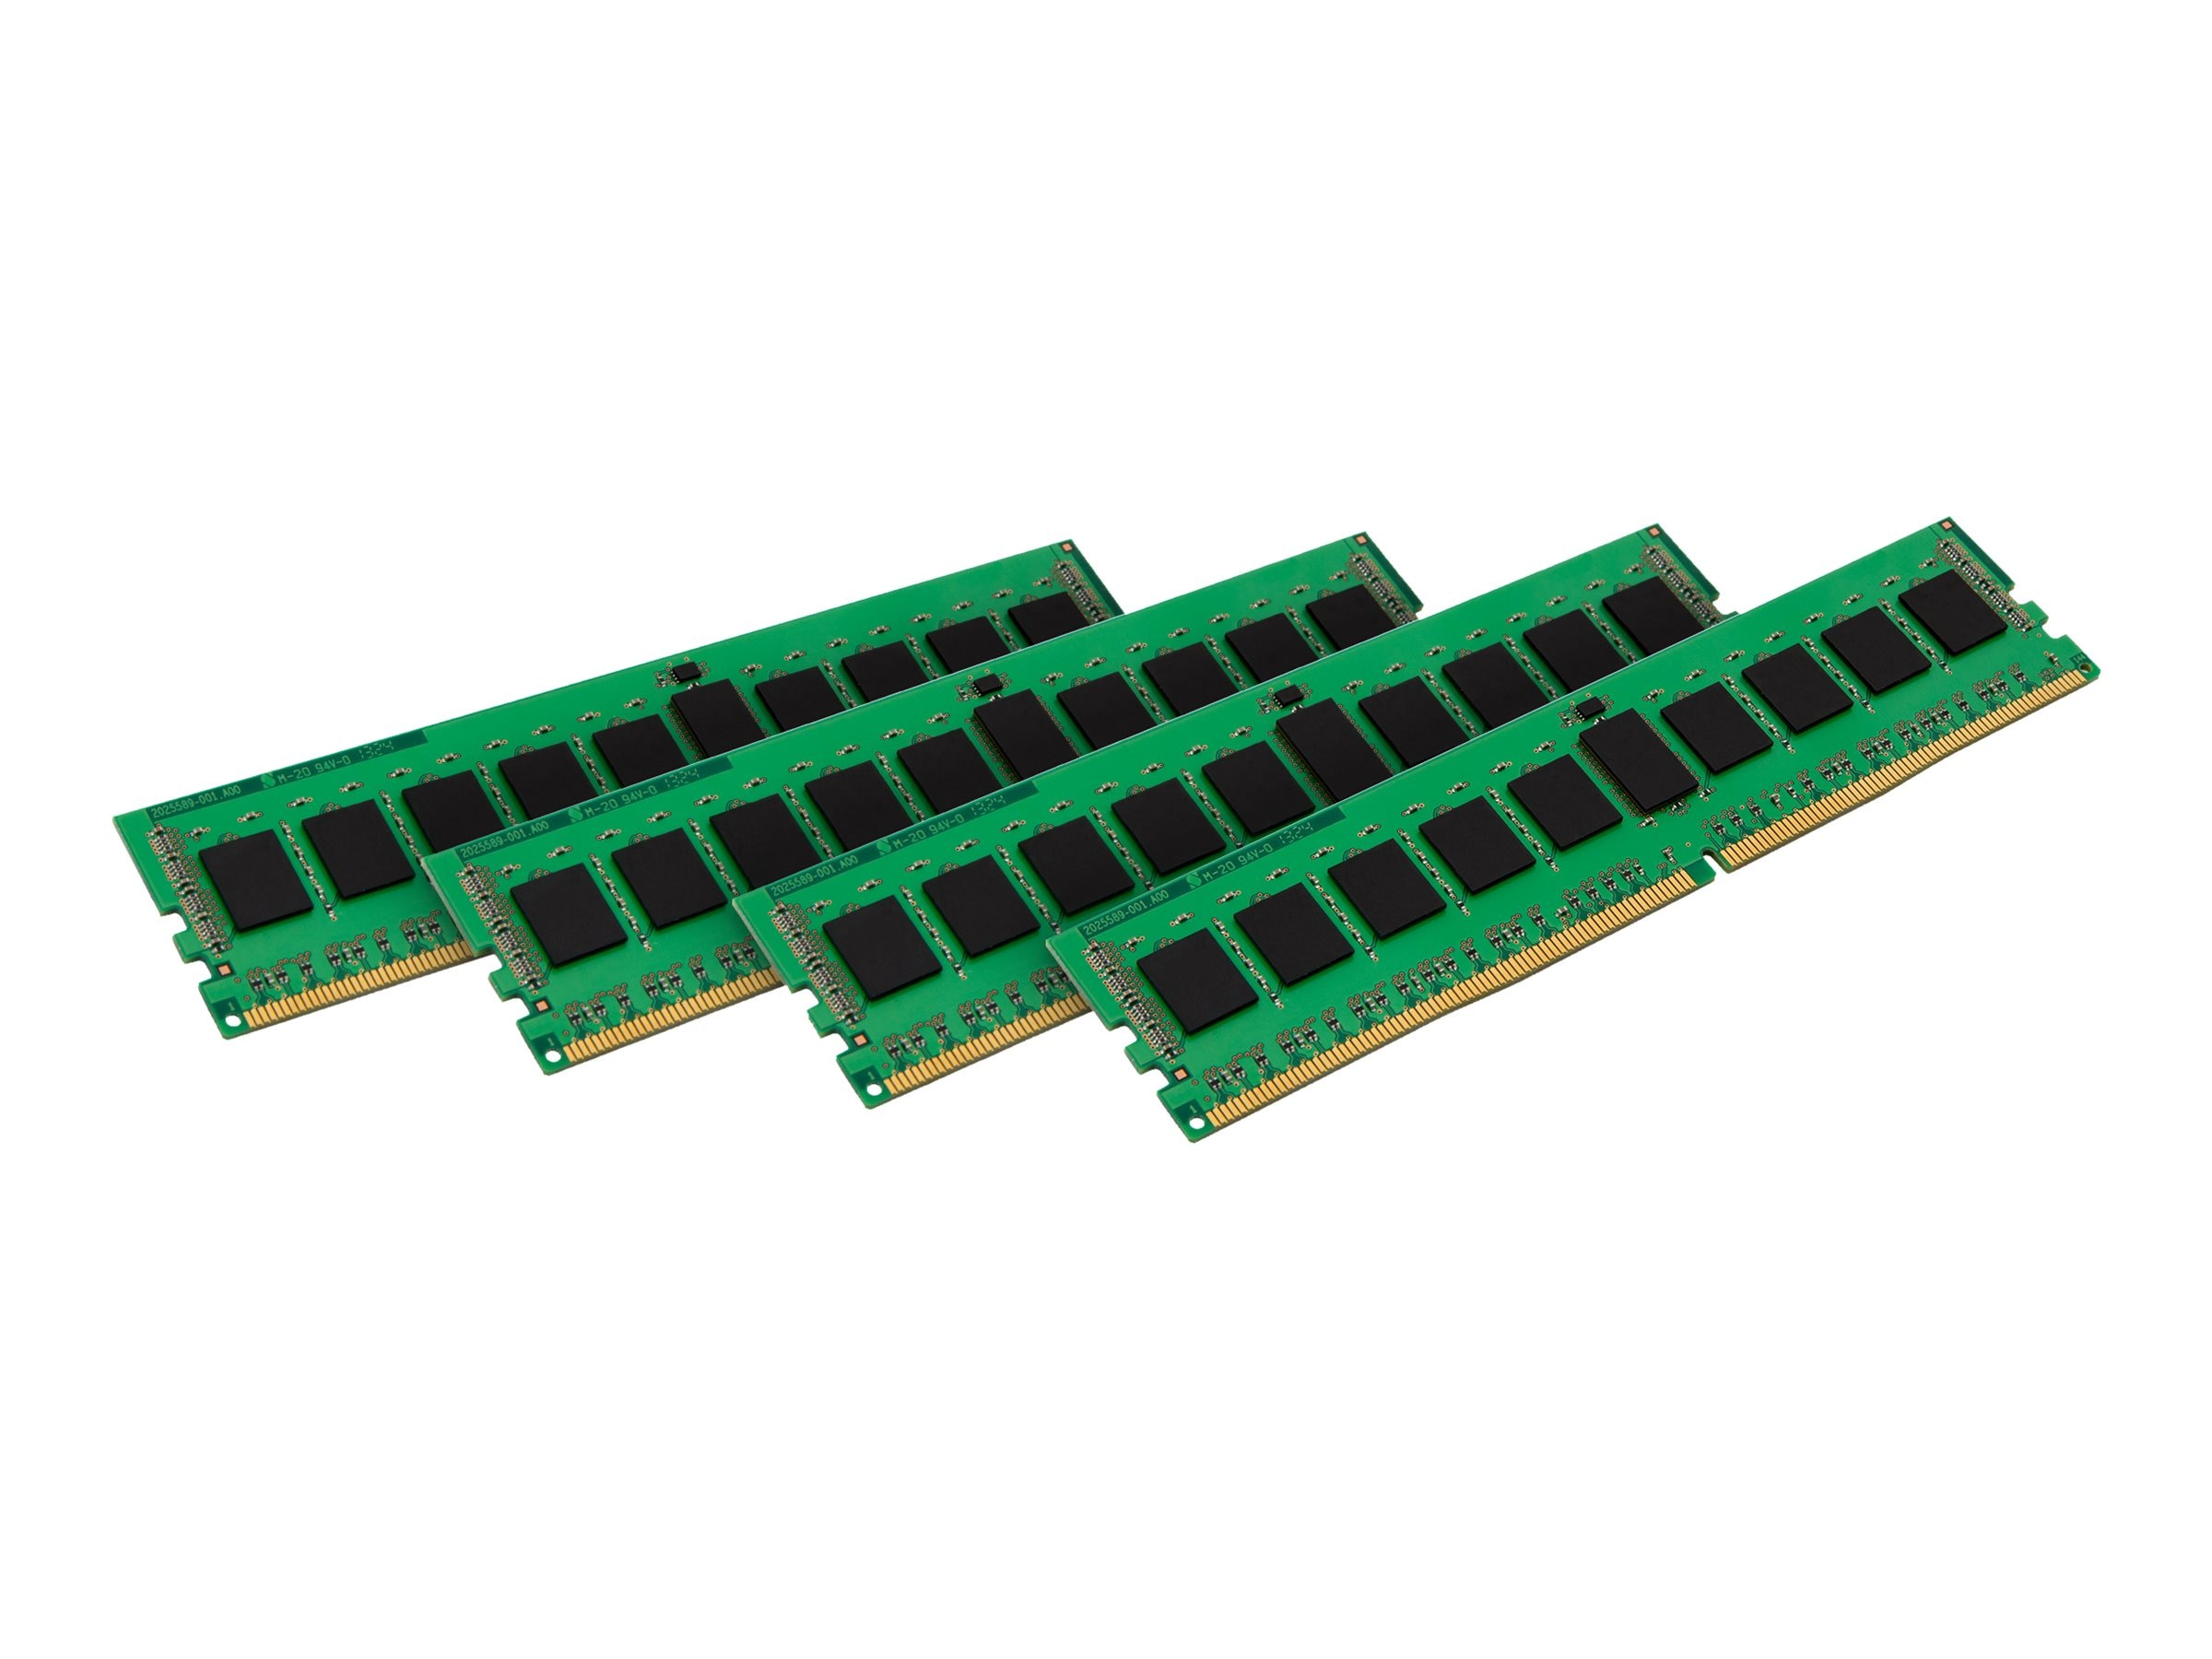 Kingston 32GB PC4-17000 288-pin DDR4 SDRAM DIMM Kit for Select Models